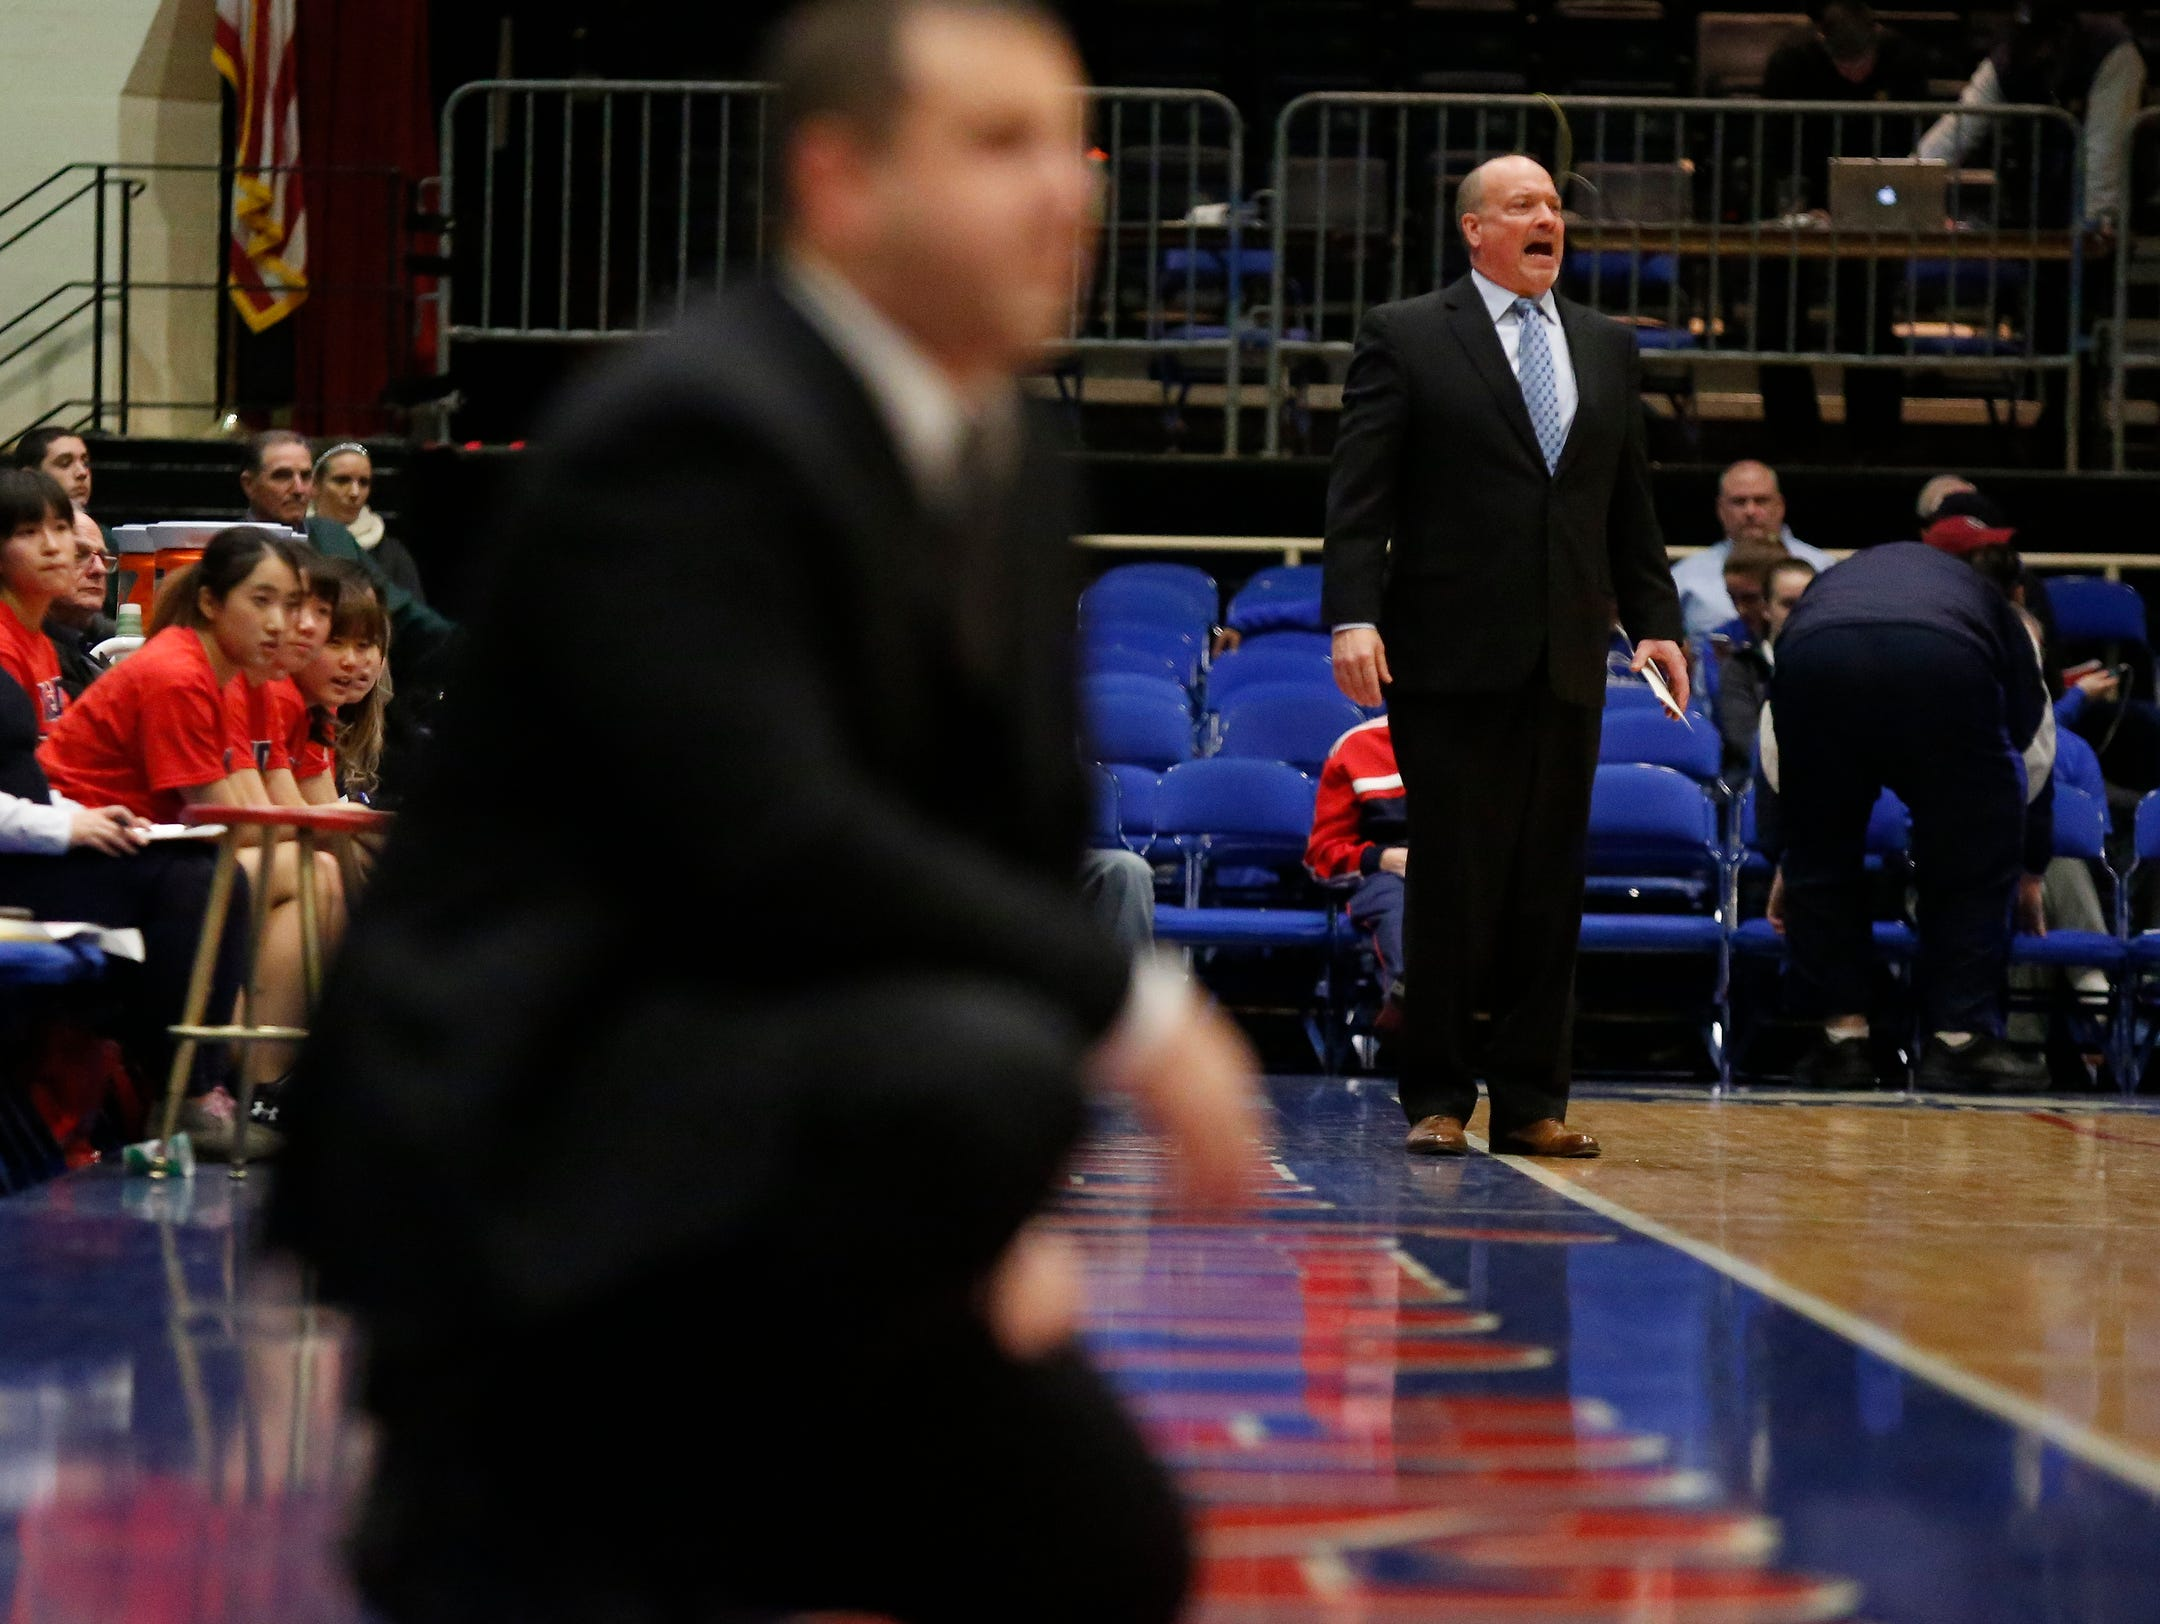 Keio head coach Steven Loscher, right, instructs players from the sideline during their 46-31 win over North Salem in the class C semi-final basketball game at the Westchester County Center in White Plains on Saturday, February 27, 2016.